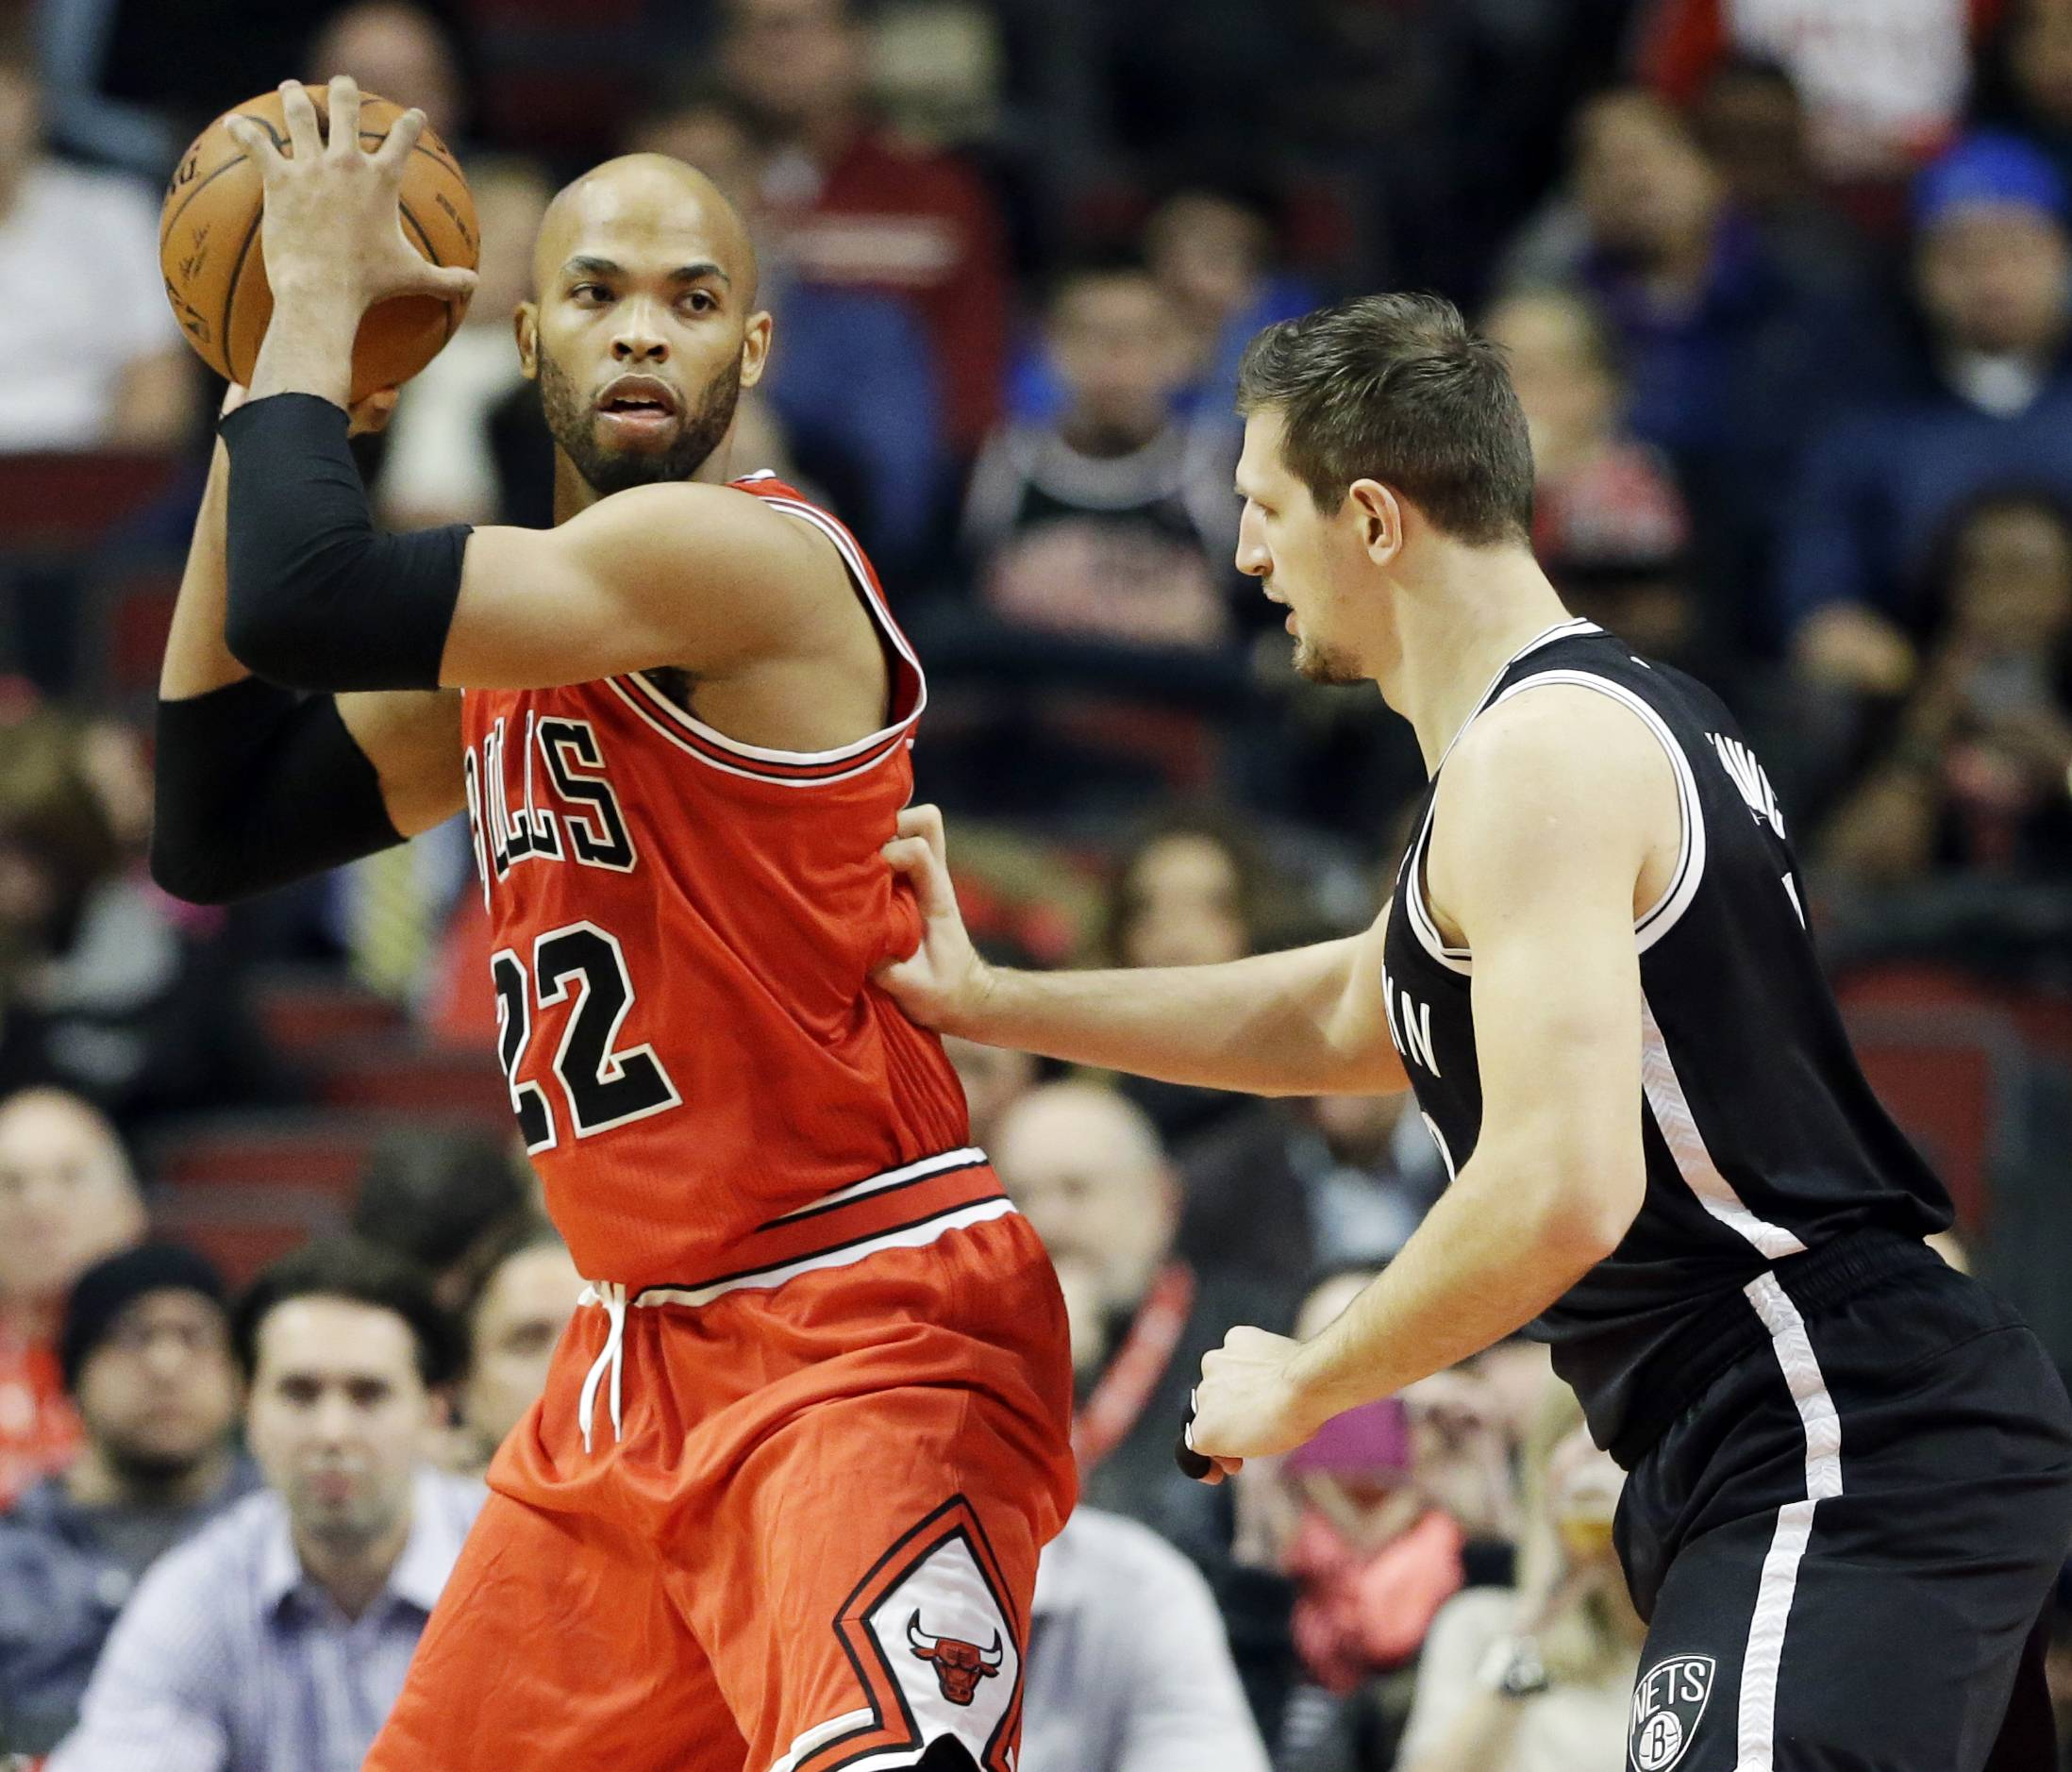 Bulls' Gibson is happy Gasol is joining team